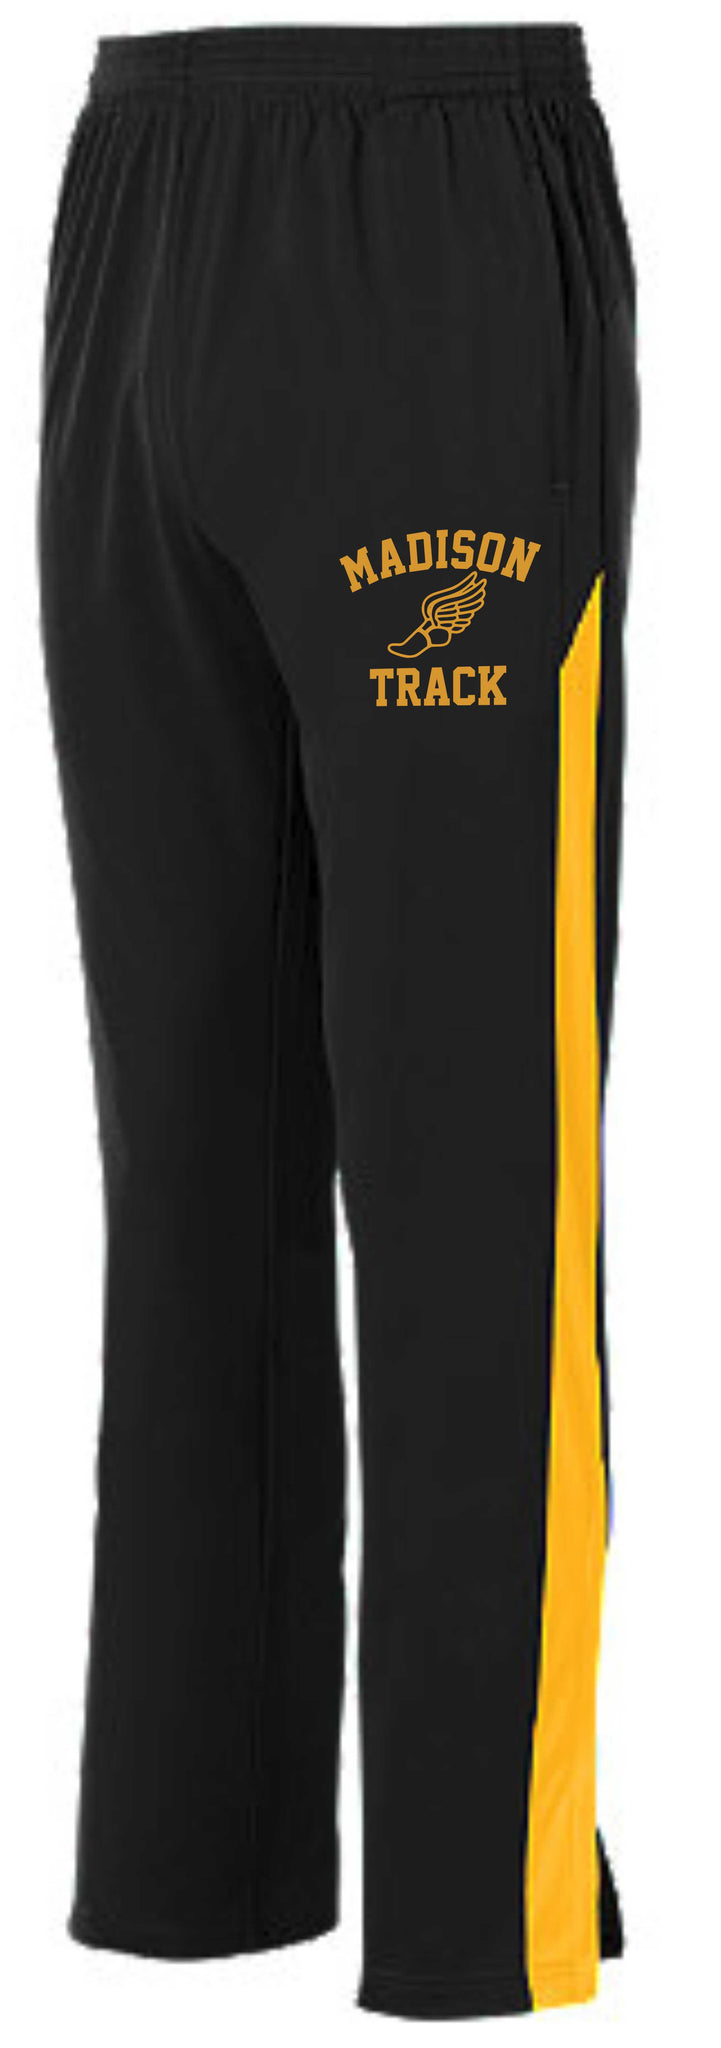 Mens James Madison Black/Gold Track Pant